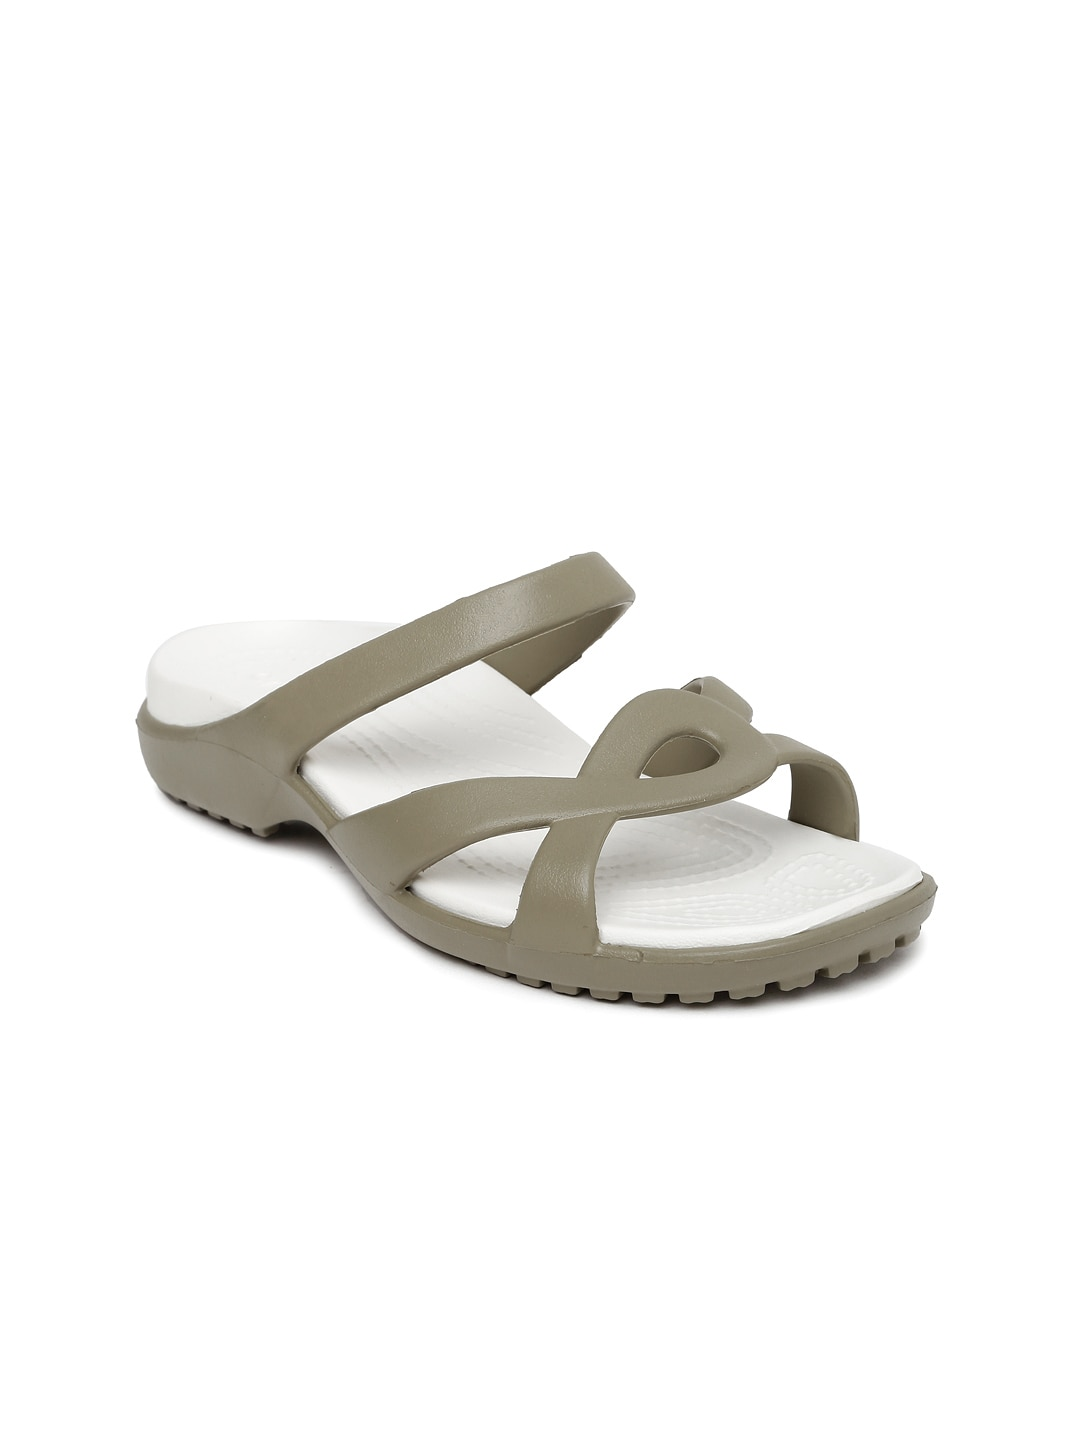 57d8fd476688 Crocs Shoes Online - Buy Crocs Flip Flops   Sandals Online in India - Myntra